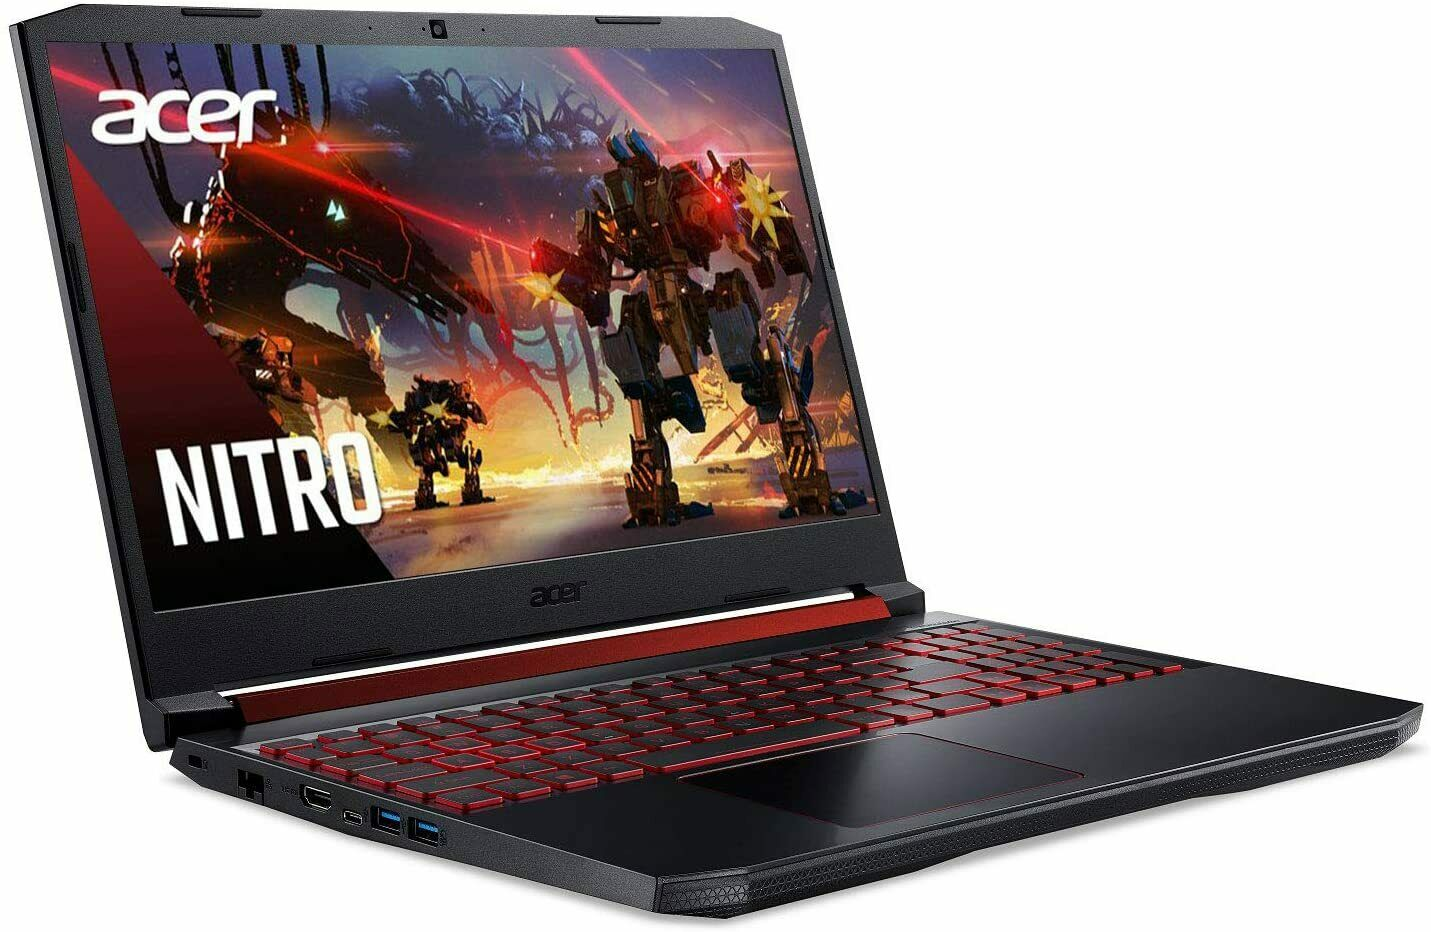 NEW Acer Nitro 5 Gaming Laptop Notebook AN515-54-728C i7 RTX